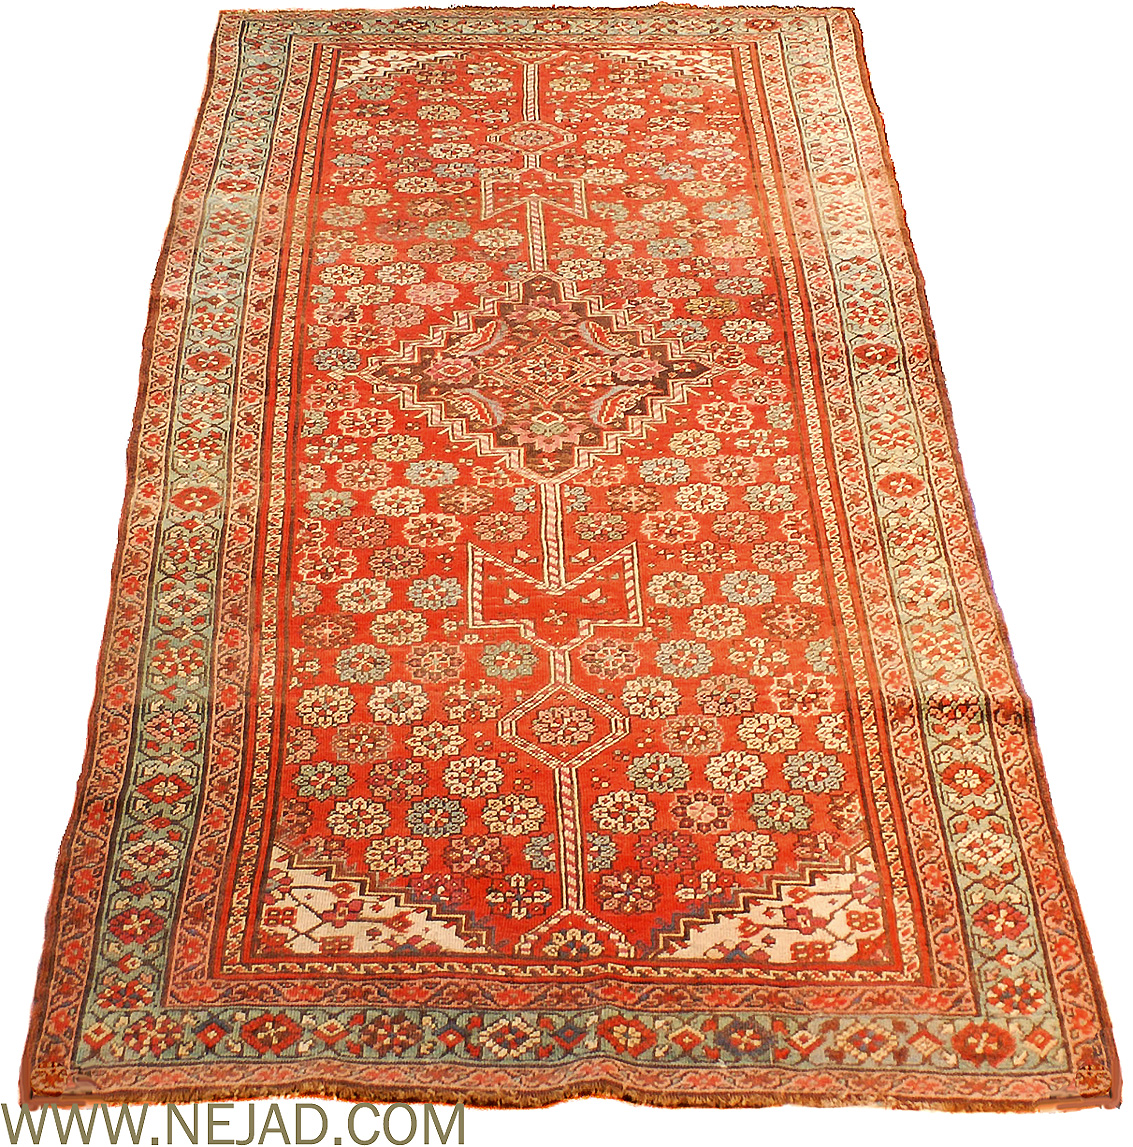 Antique Caucasian Kurdish Rug - Nejad Rugs #24314